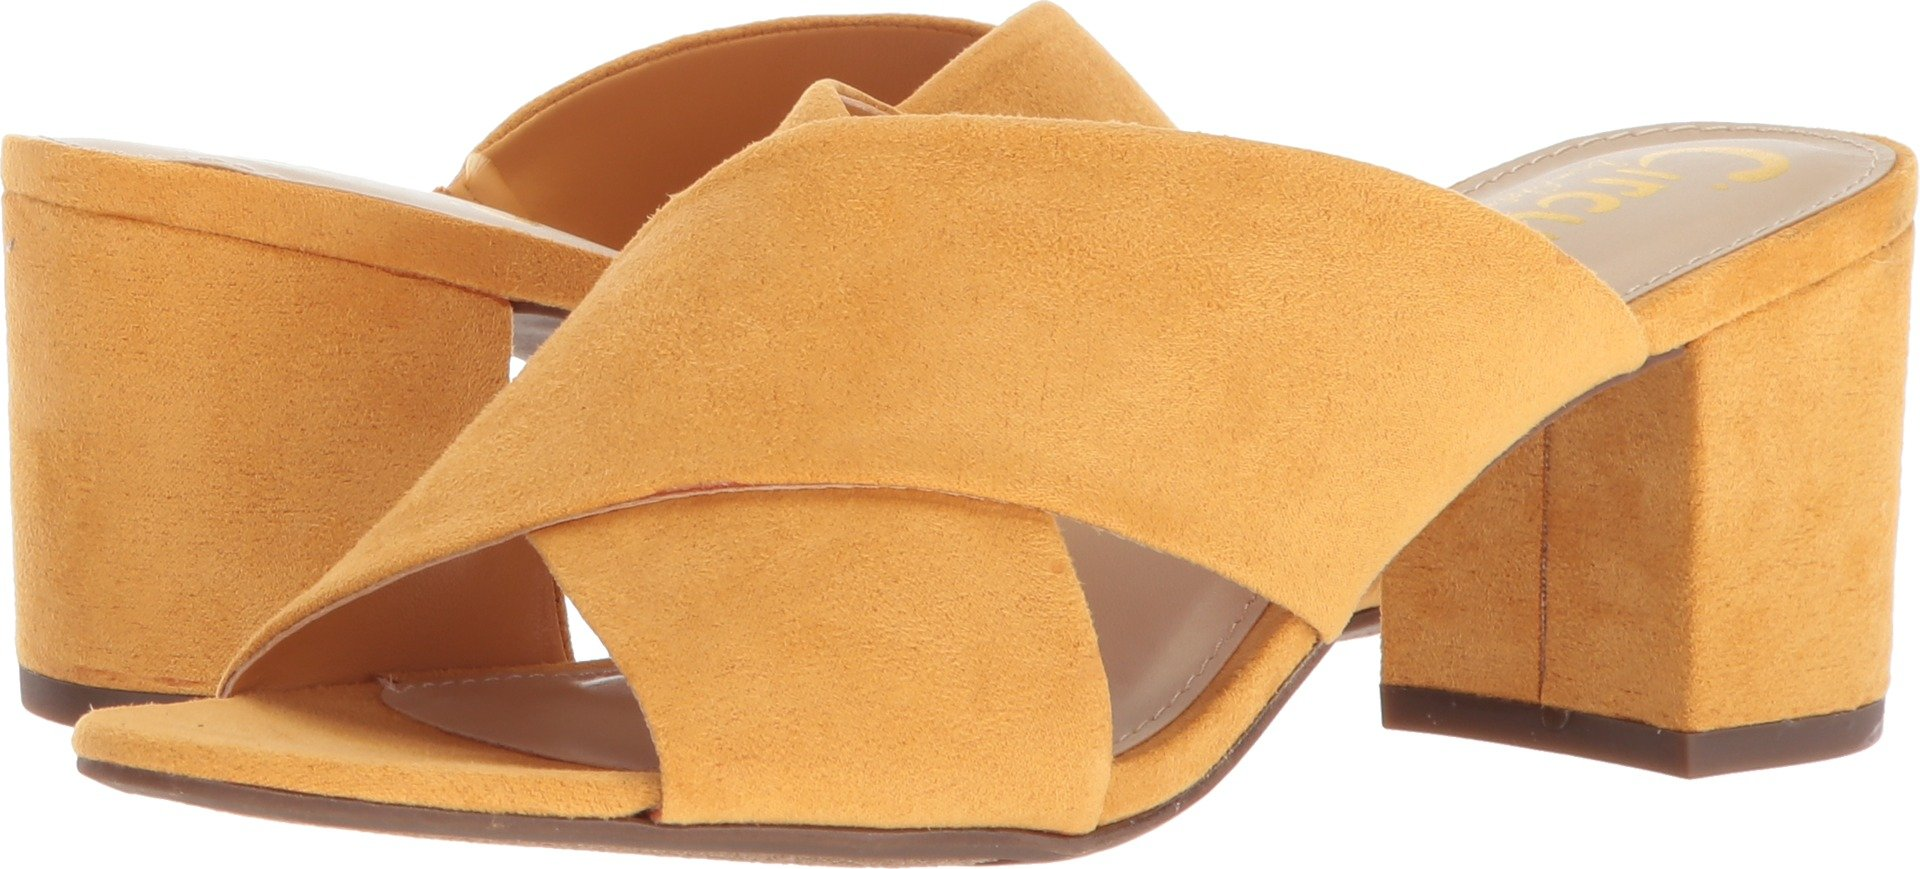 Circus by Sam Edelman Women's Stevie Heeled Sandal, Sunglow Yellow, 7.5 M US